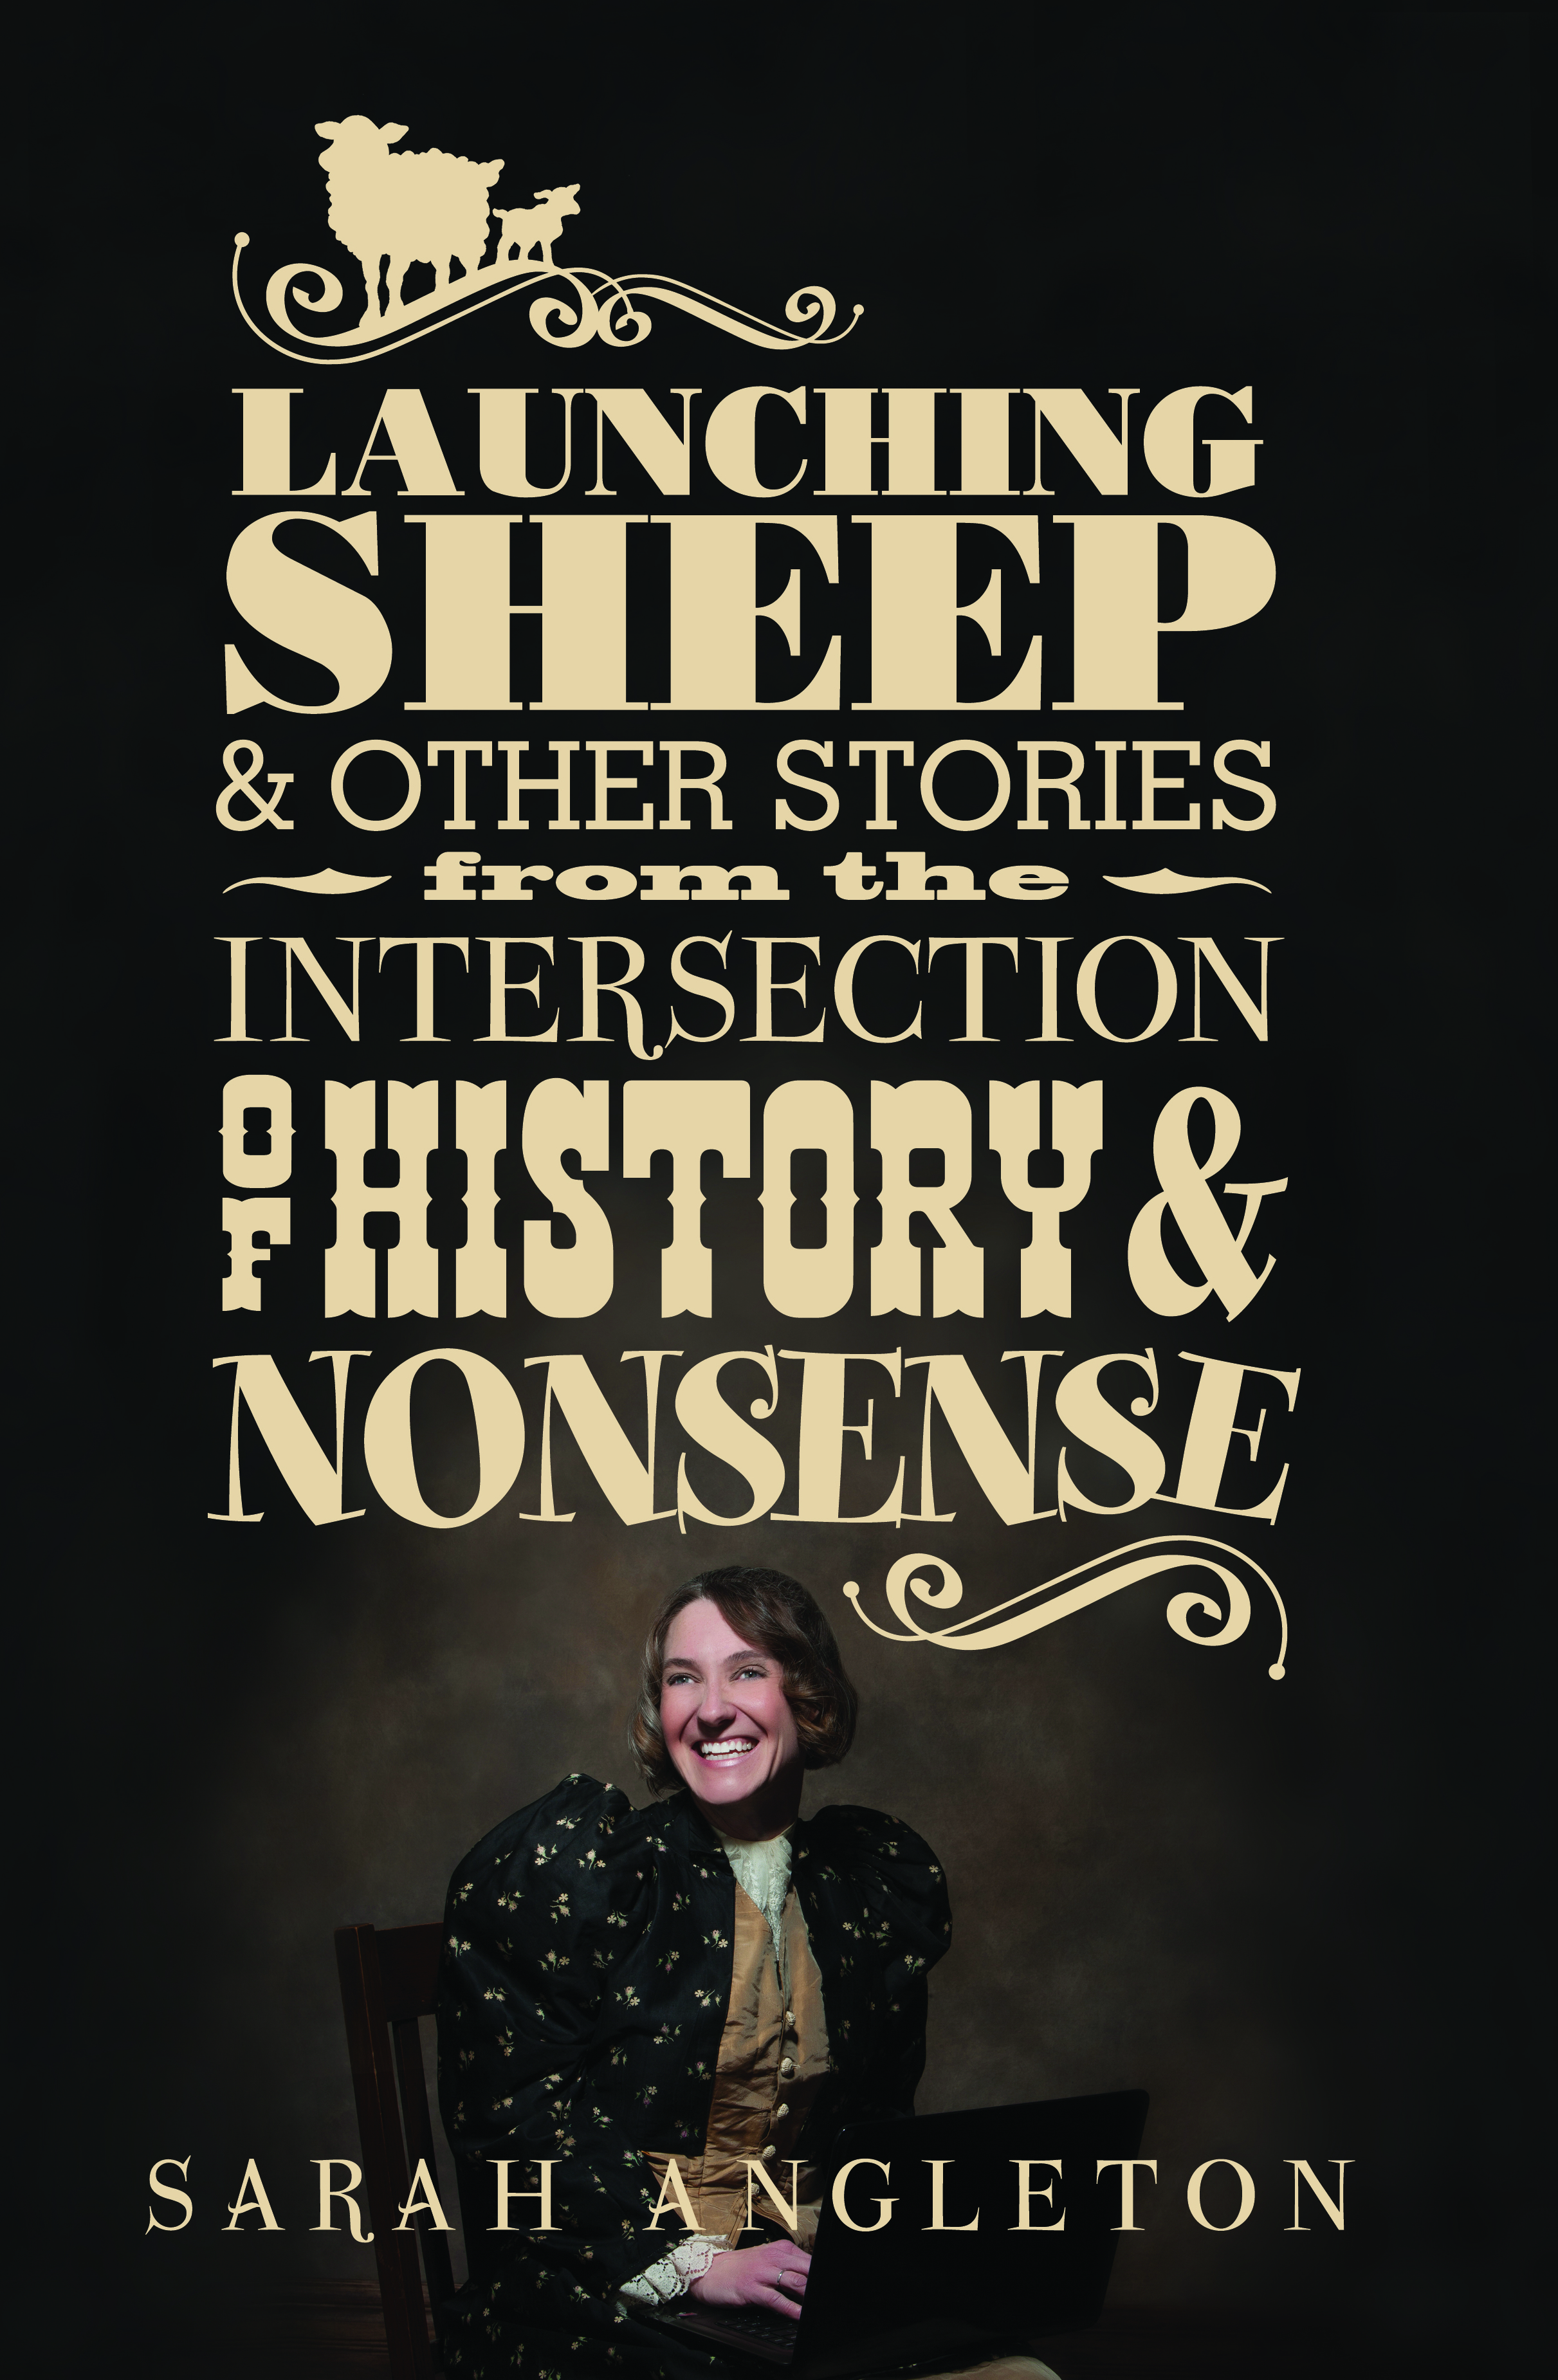 Launching Sheep & Other Stories